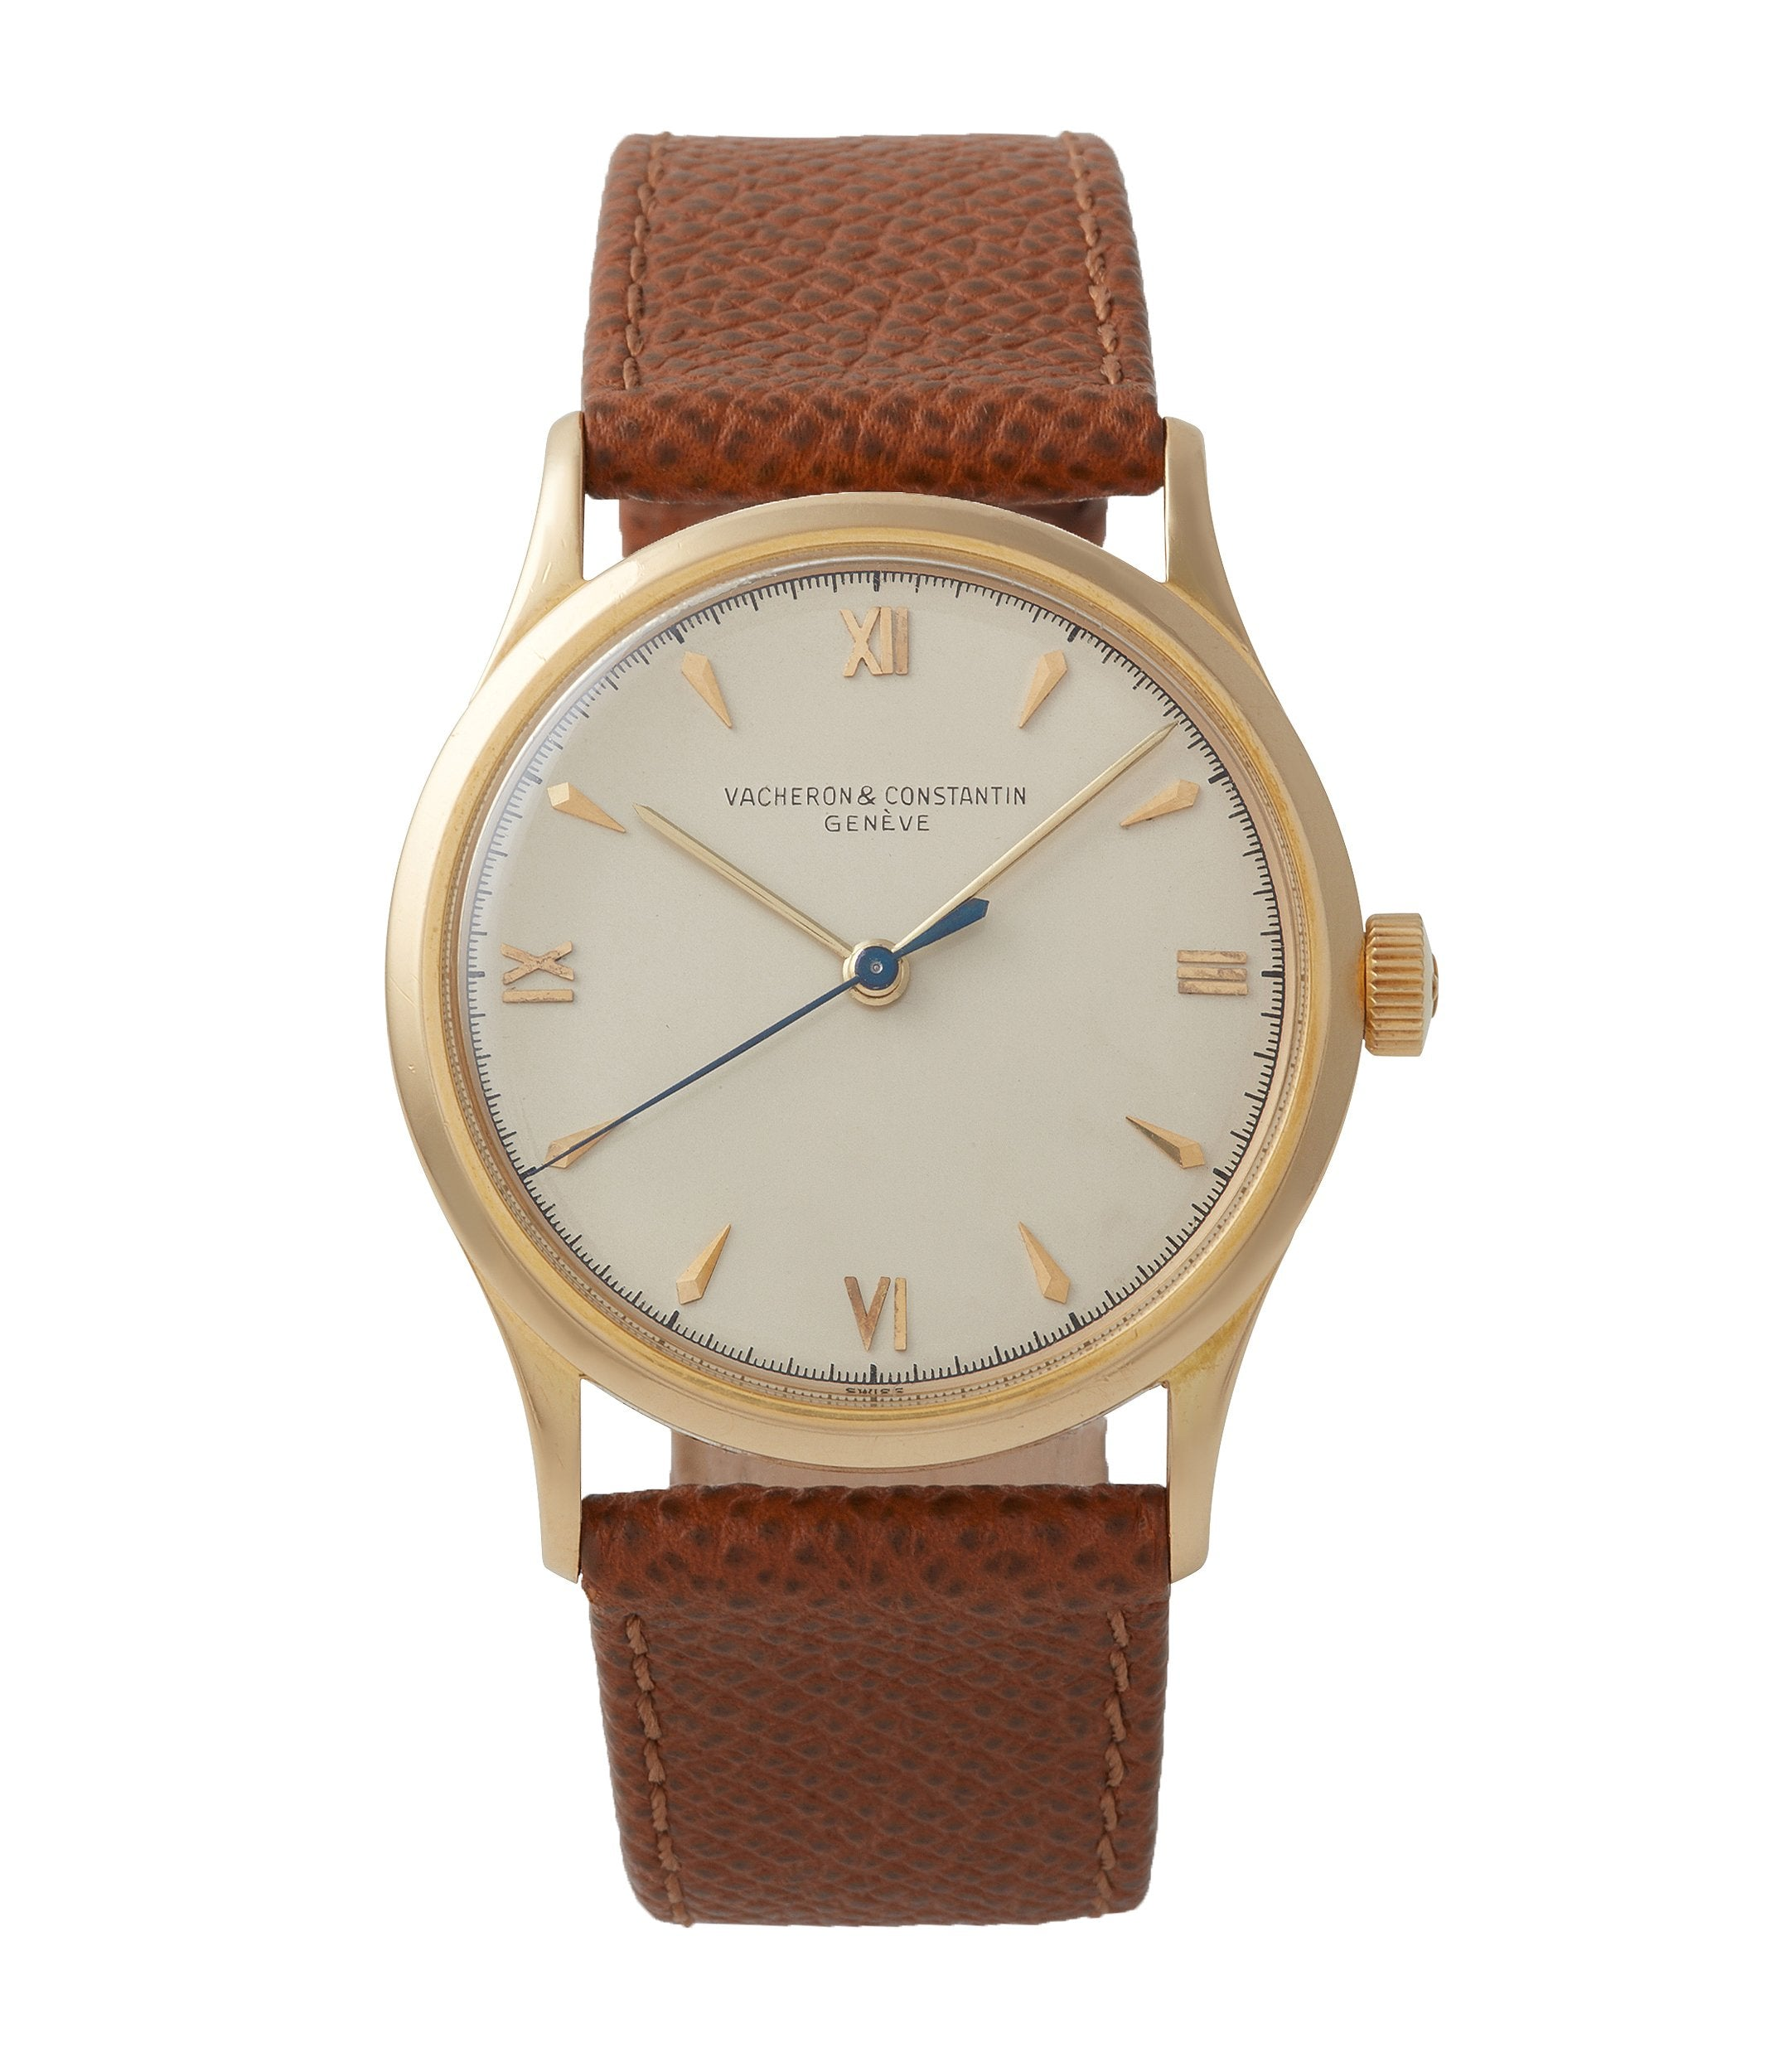 Roman numerals Vacheron Constantin Ref. 4127 vintage time-only yellow gold dress watch for sale online A Collected Man London UK specialist rare watches